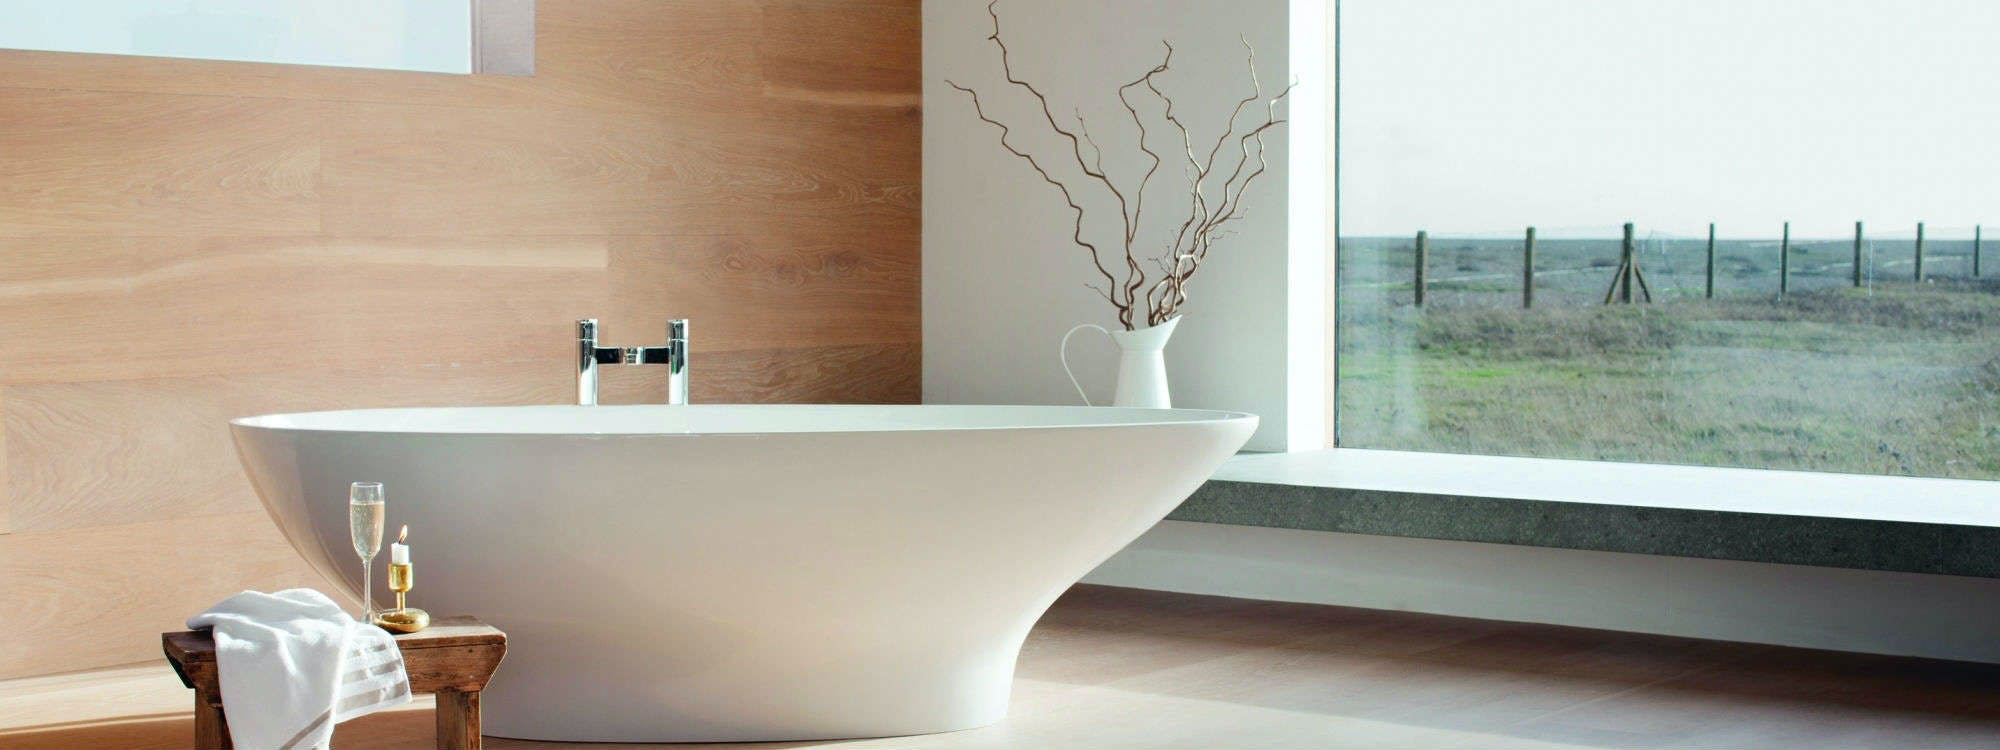 At More Bathrooms our aim is to help you create your very own relaxing sanctuary within your own home in the form of a large and luxury bathroom.